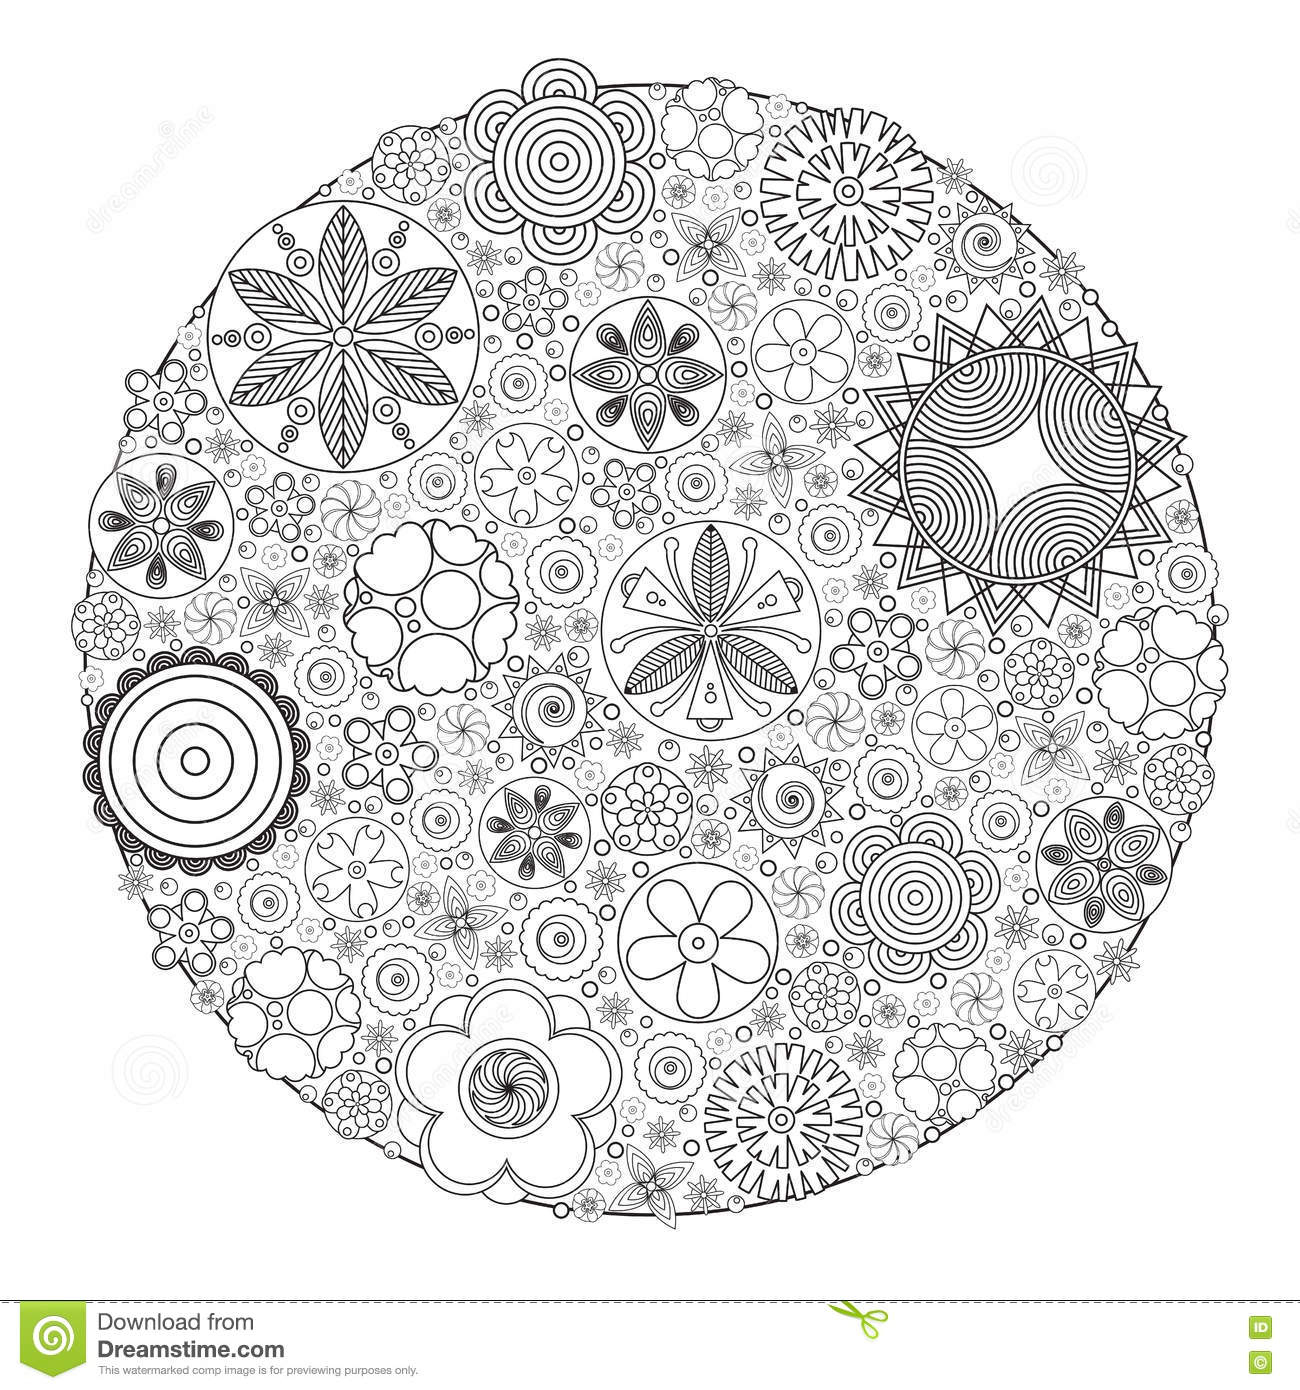 Coloring book grown up - Vector Monochrome Floral Decorative Pattern For Coloring Book For Grown Up And Adult